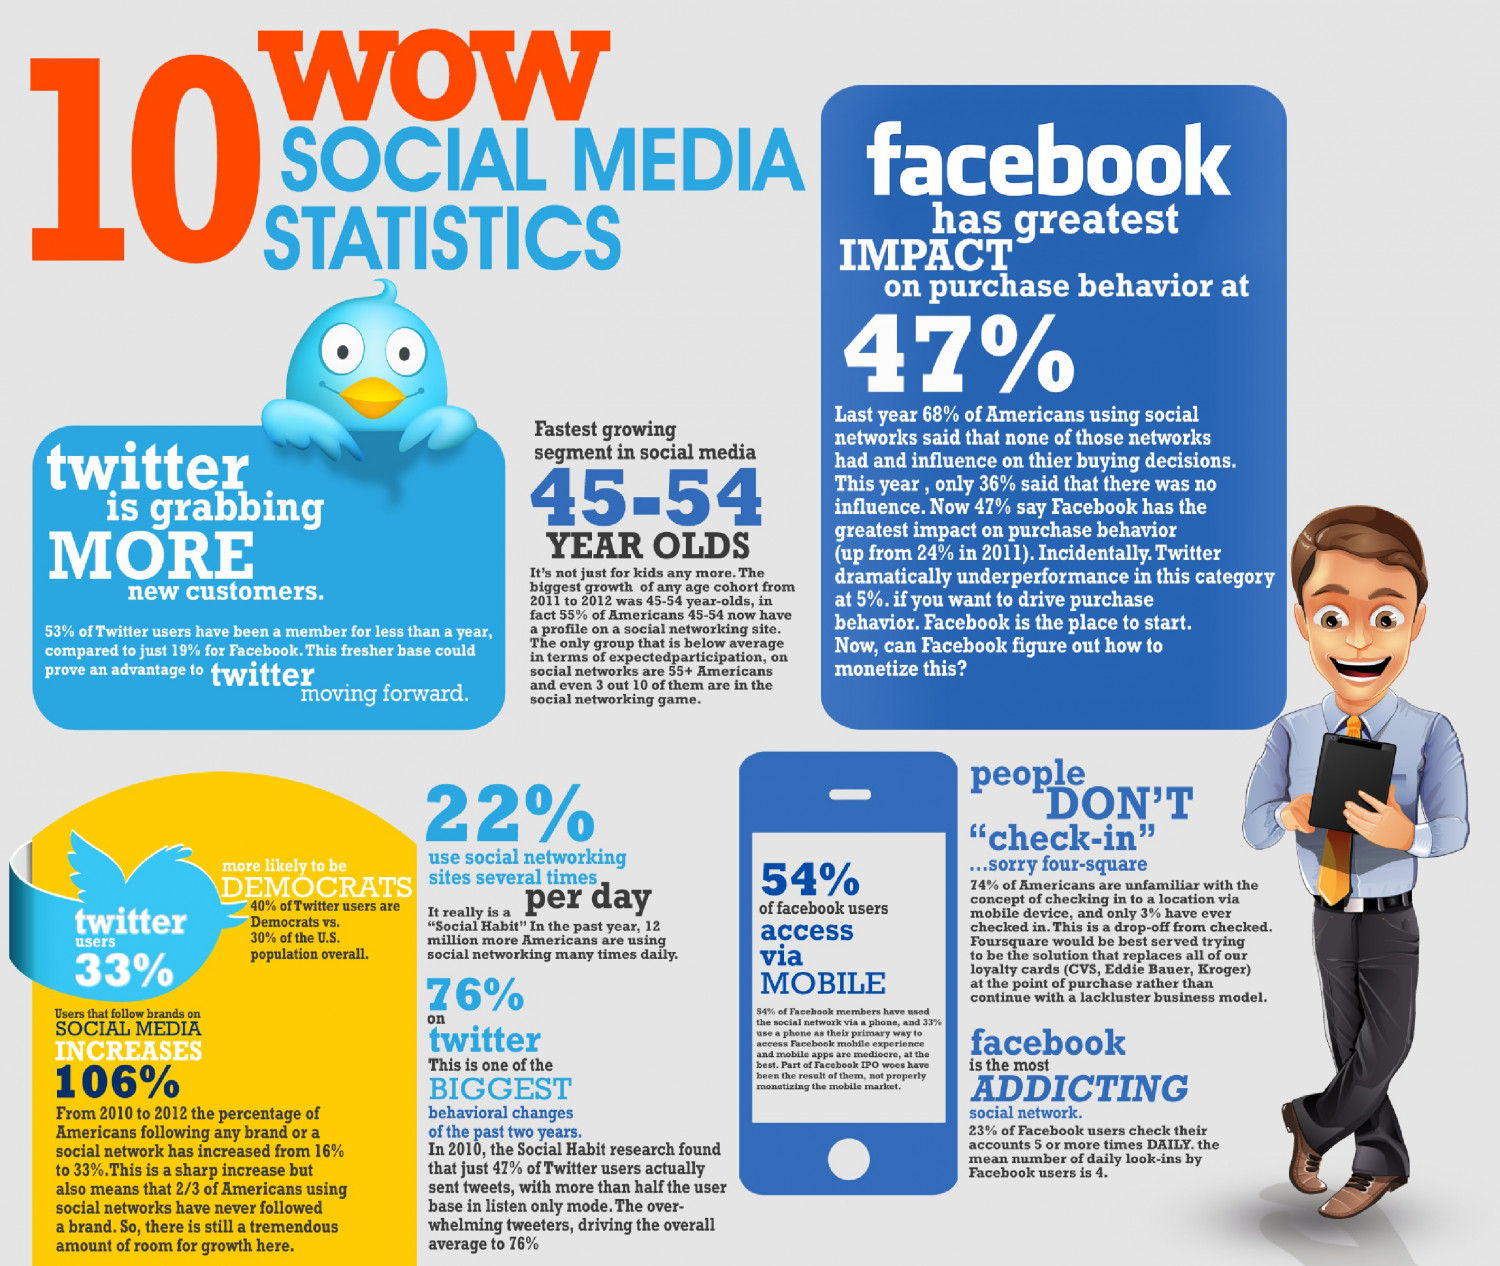 10 Wow Social Media Statistics | Visual.ly